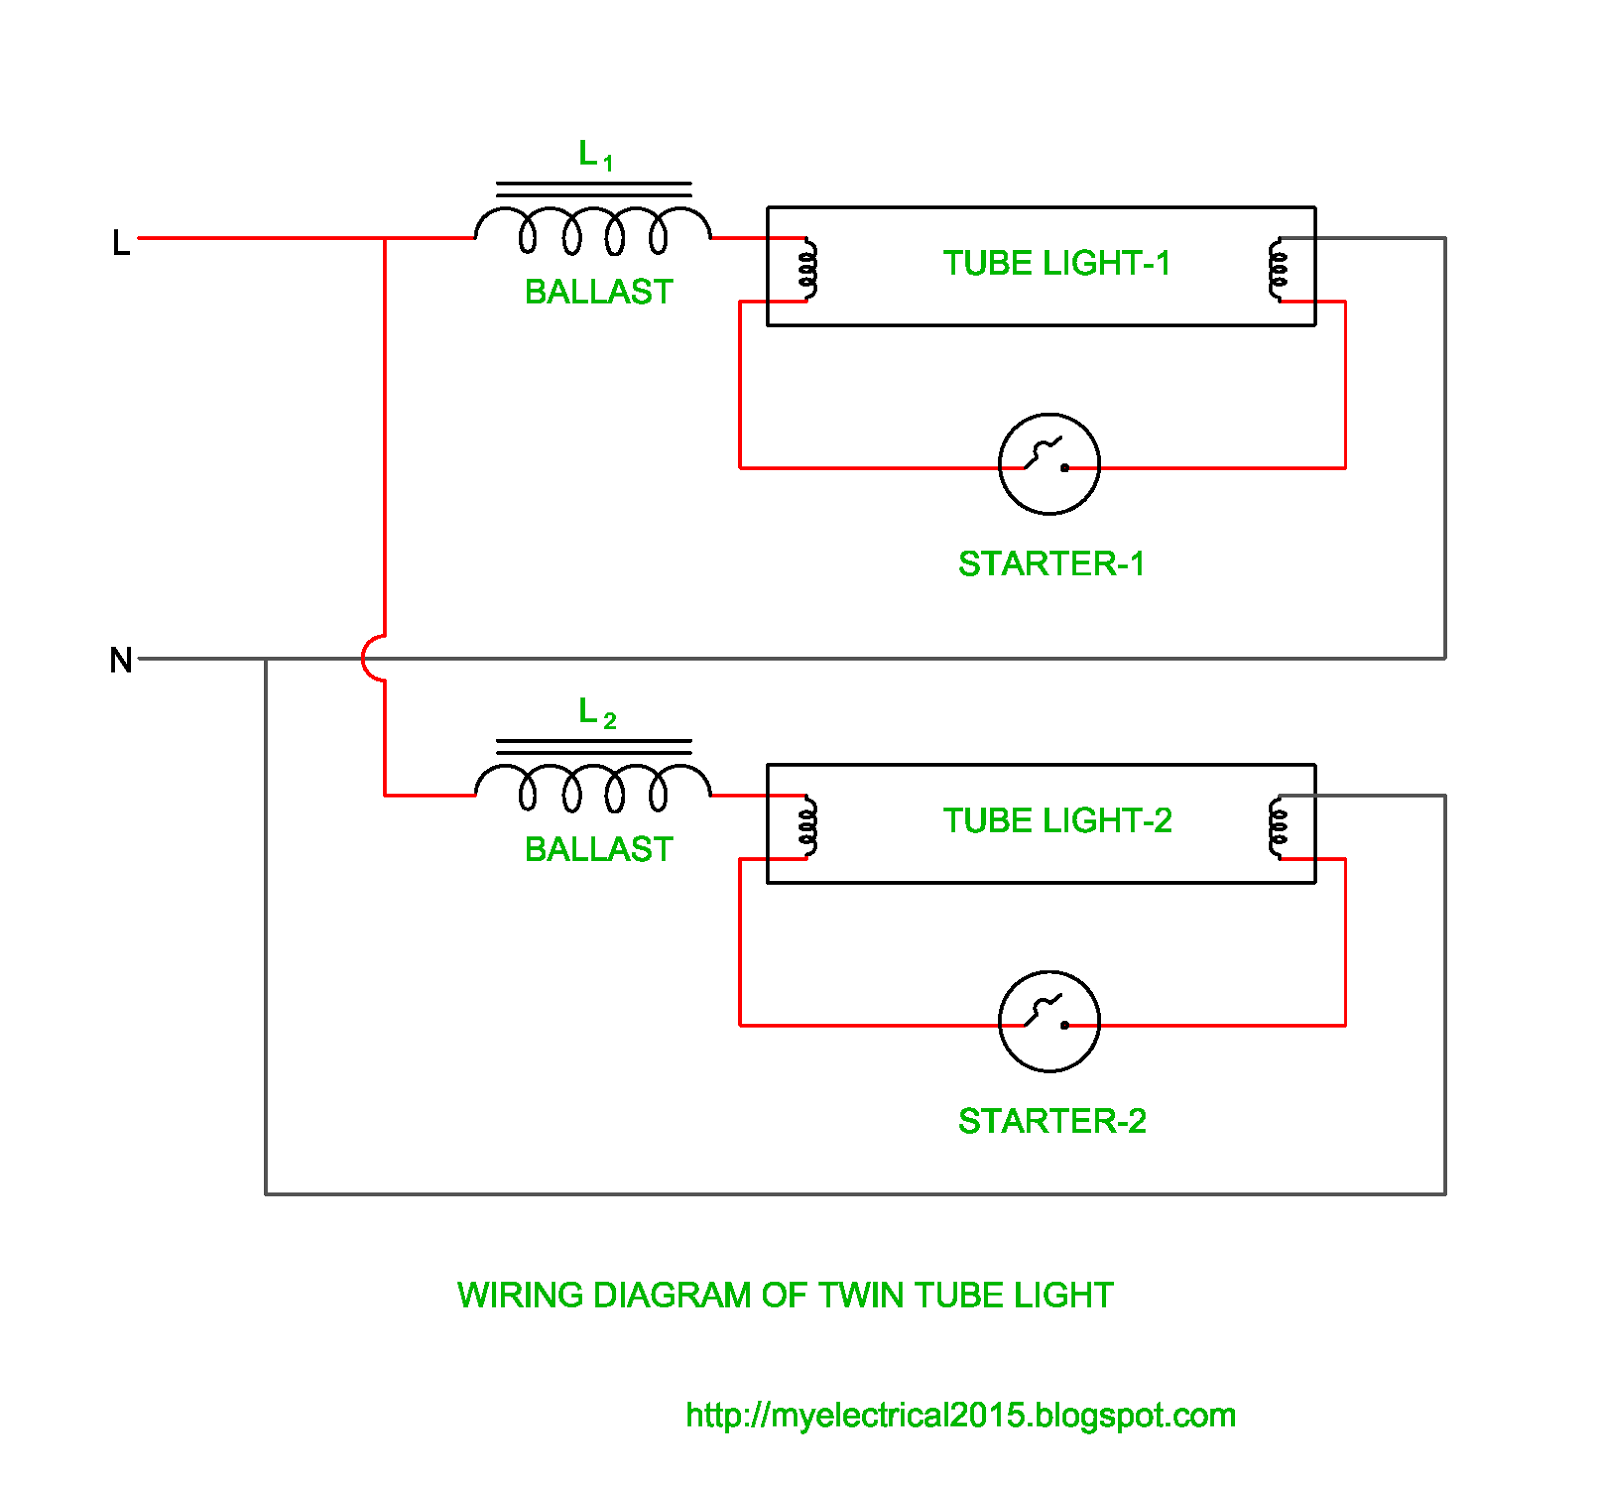 Wiring Diagram Of Twin Tube Light